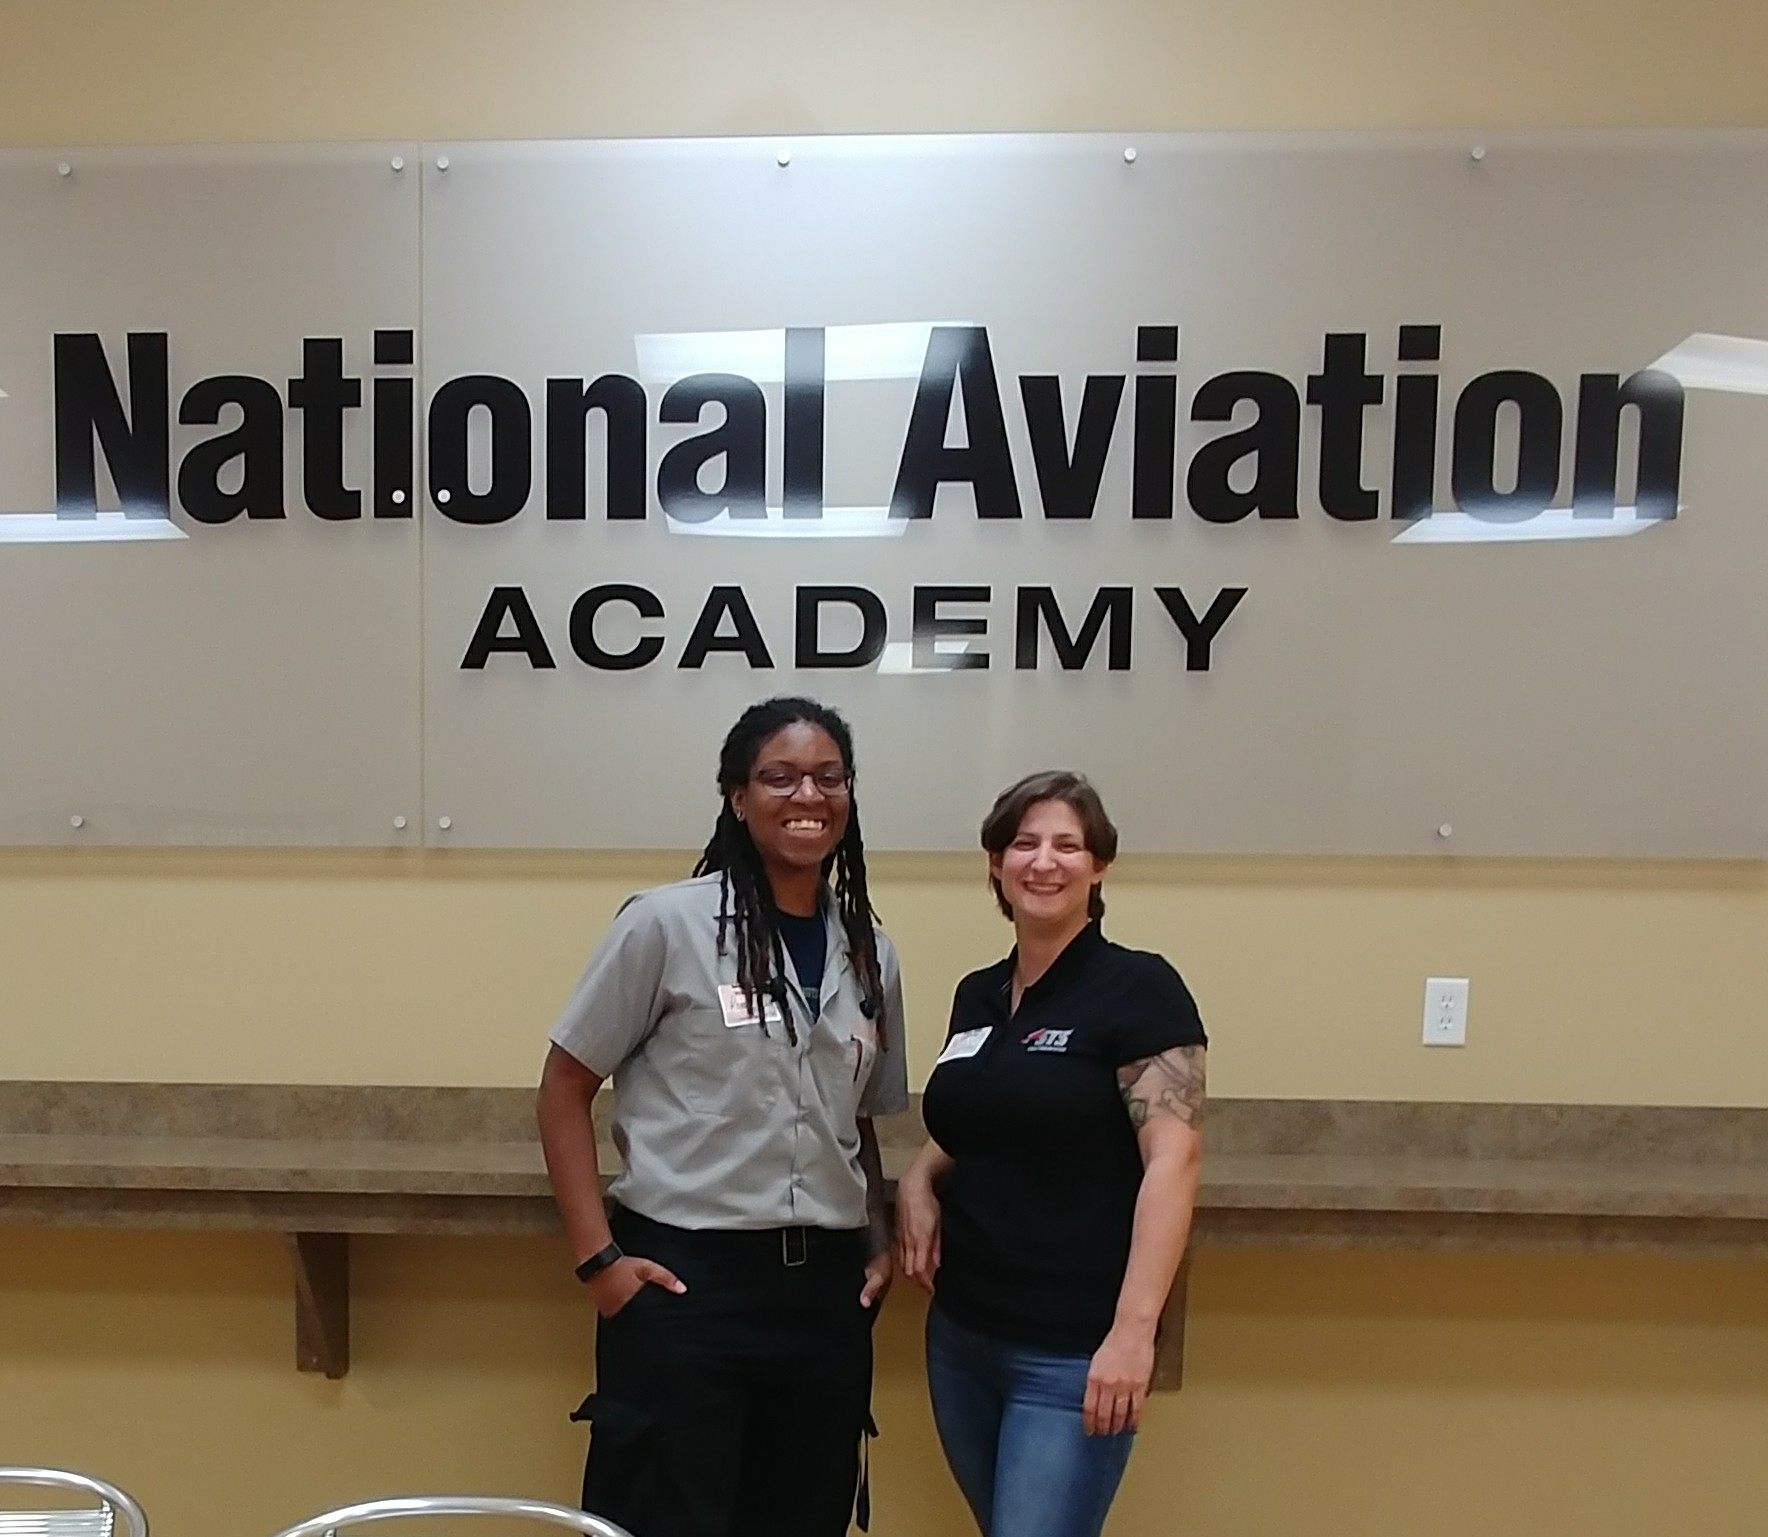 Reese Scott and Stacey Rudser visit NAA